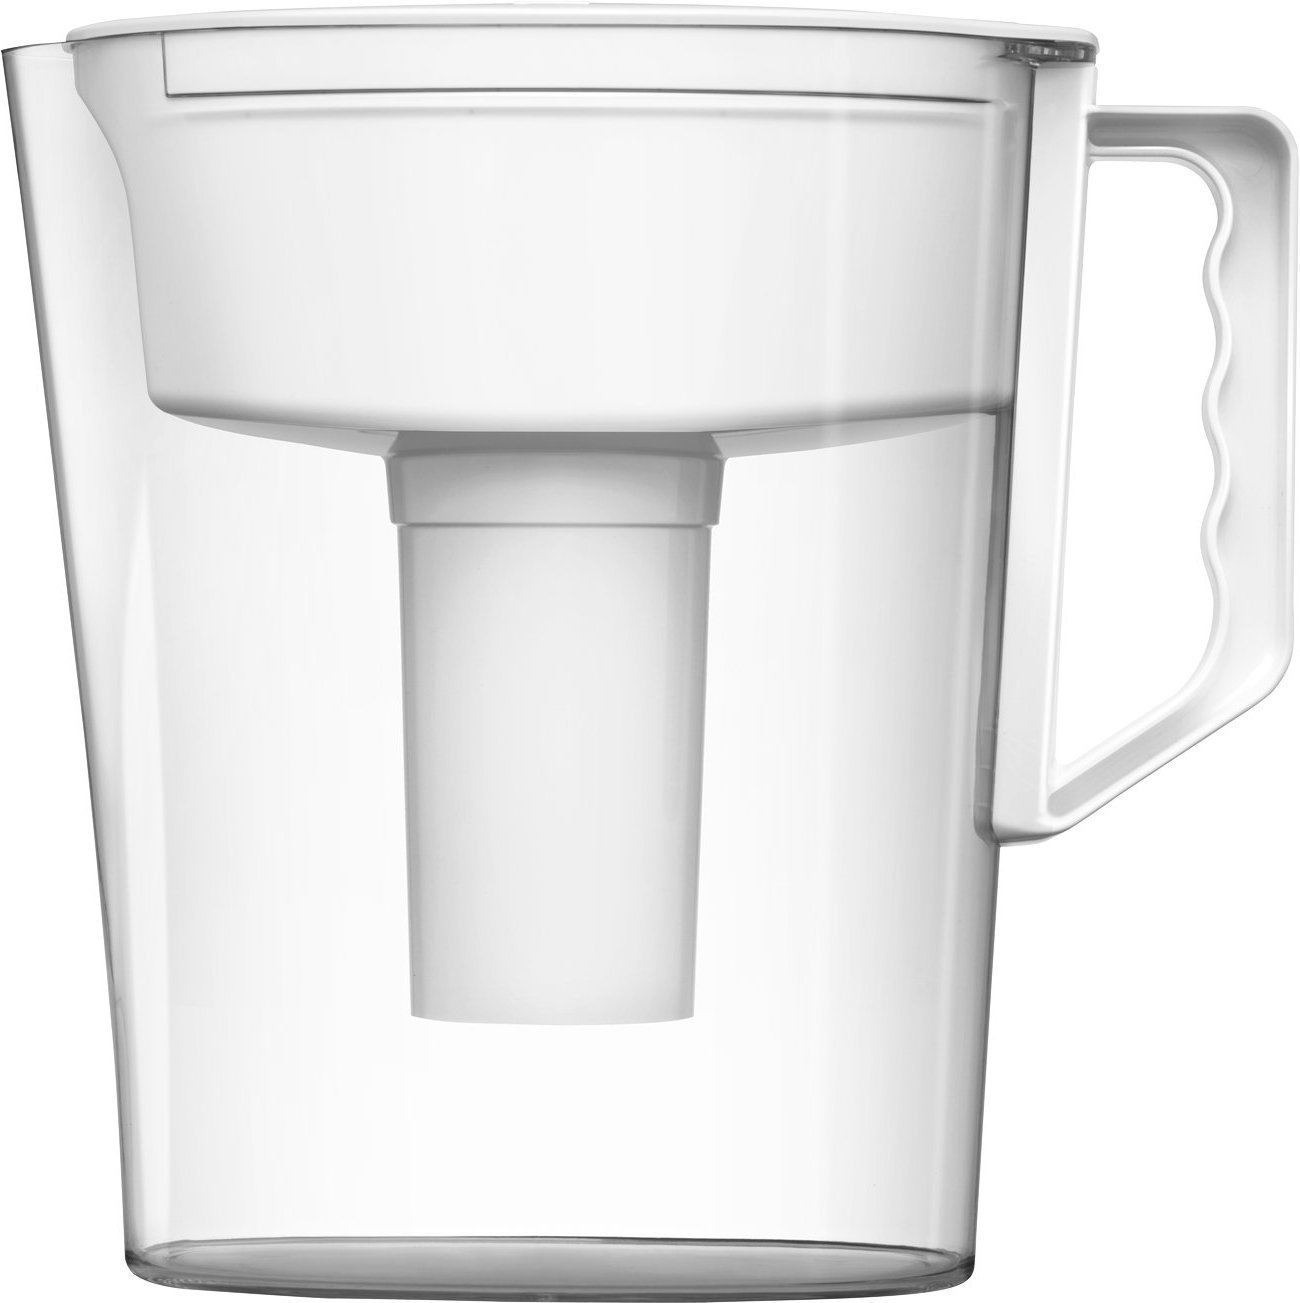 $13.27 (was $18) Brita Slim Water Filter Pitcher, 5 Cup